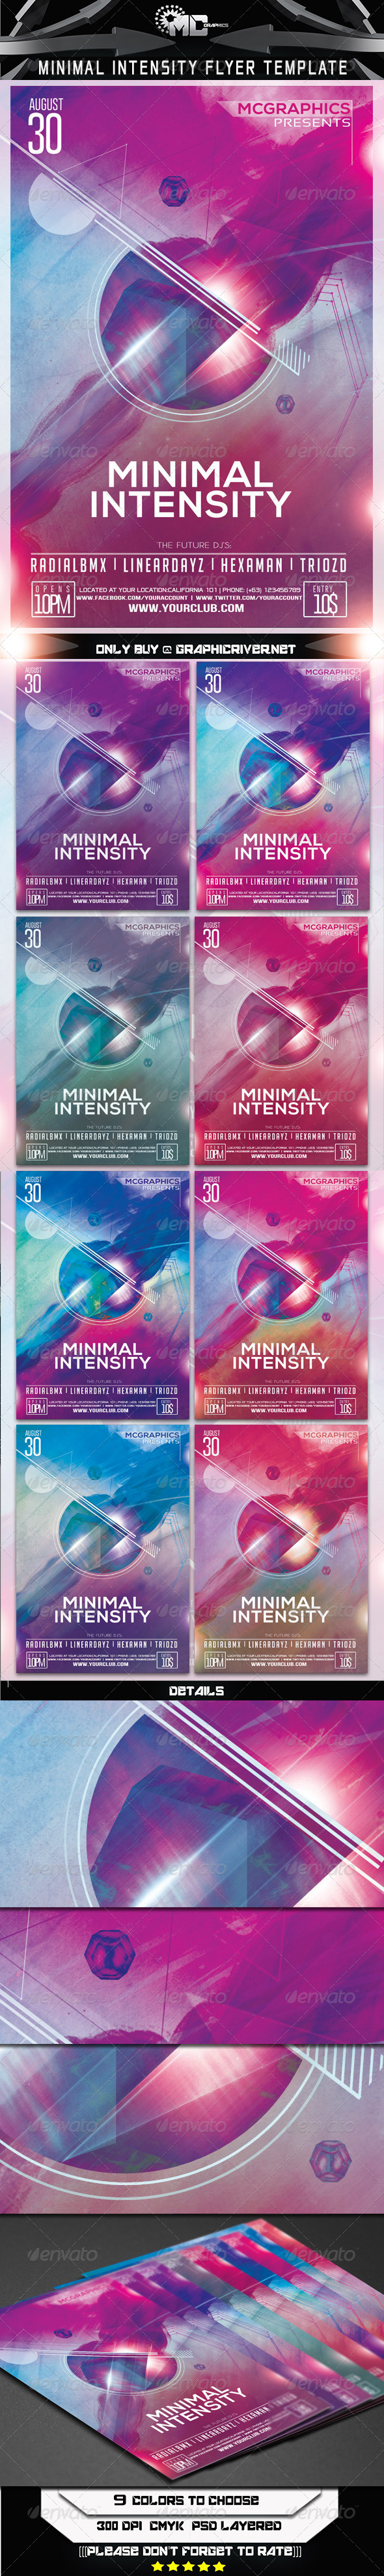 GraphicRiver Minimal Intensity Flyer Template 7104047